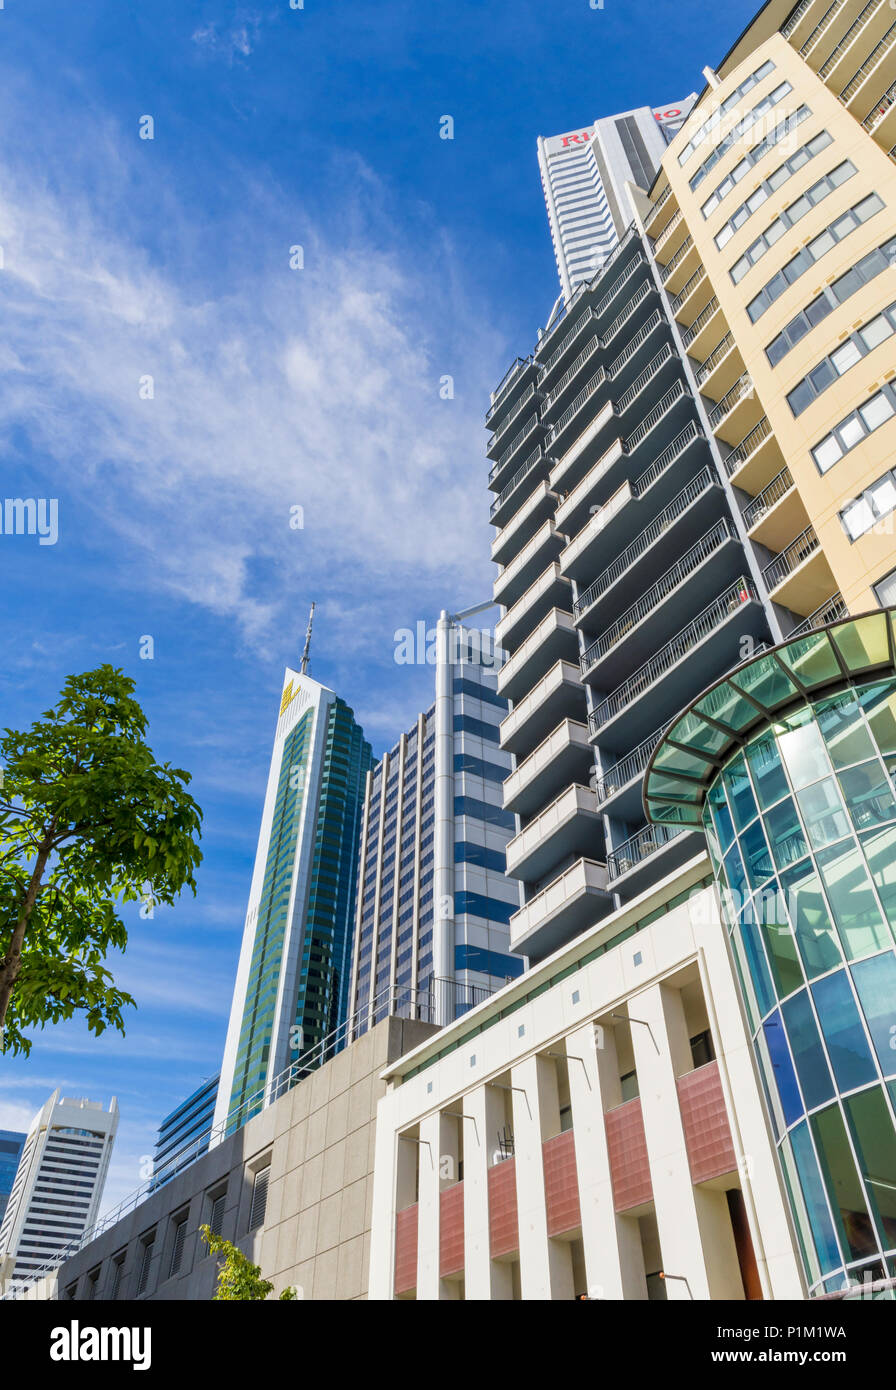 Looking up at the skyscrapers of Perth's CBD, Perth City, Western Australia, Australia - Stock Image